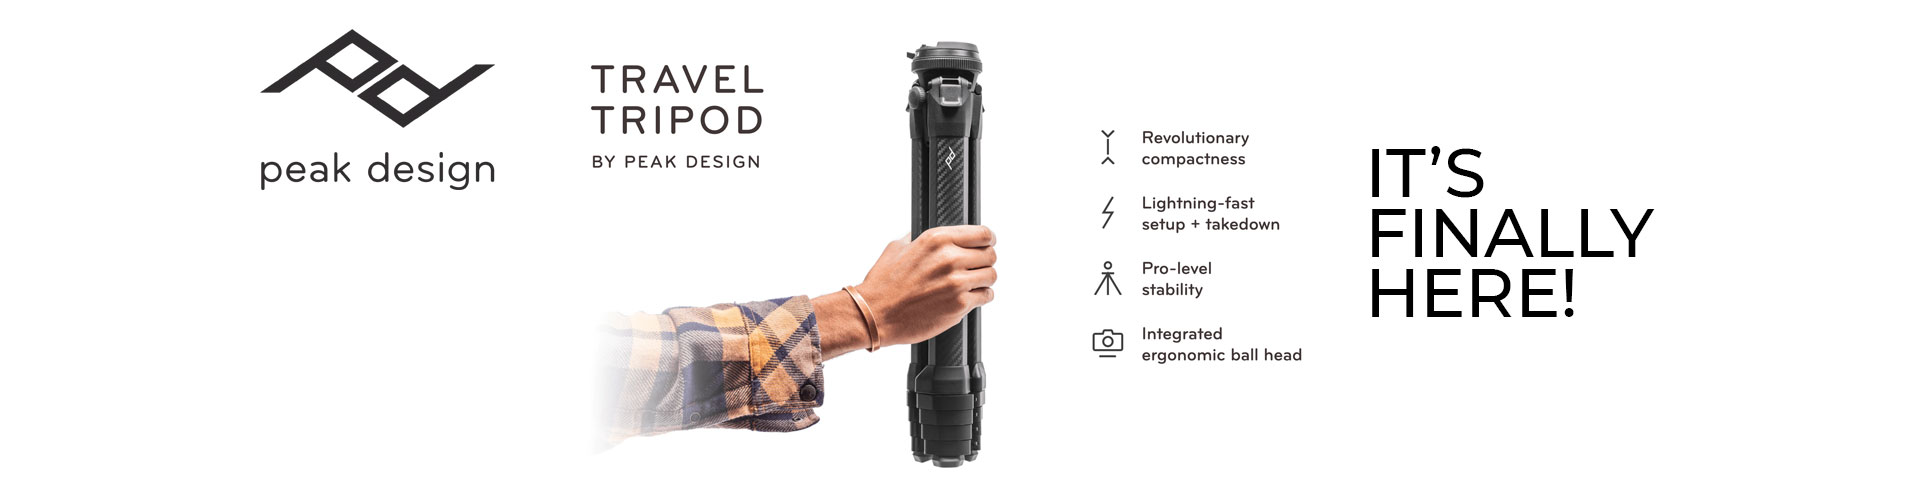 Peak Design Travel Tripod is FINALLY here!